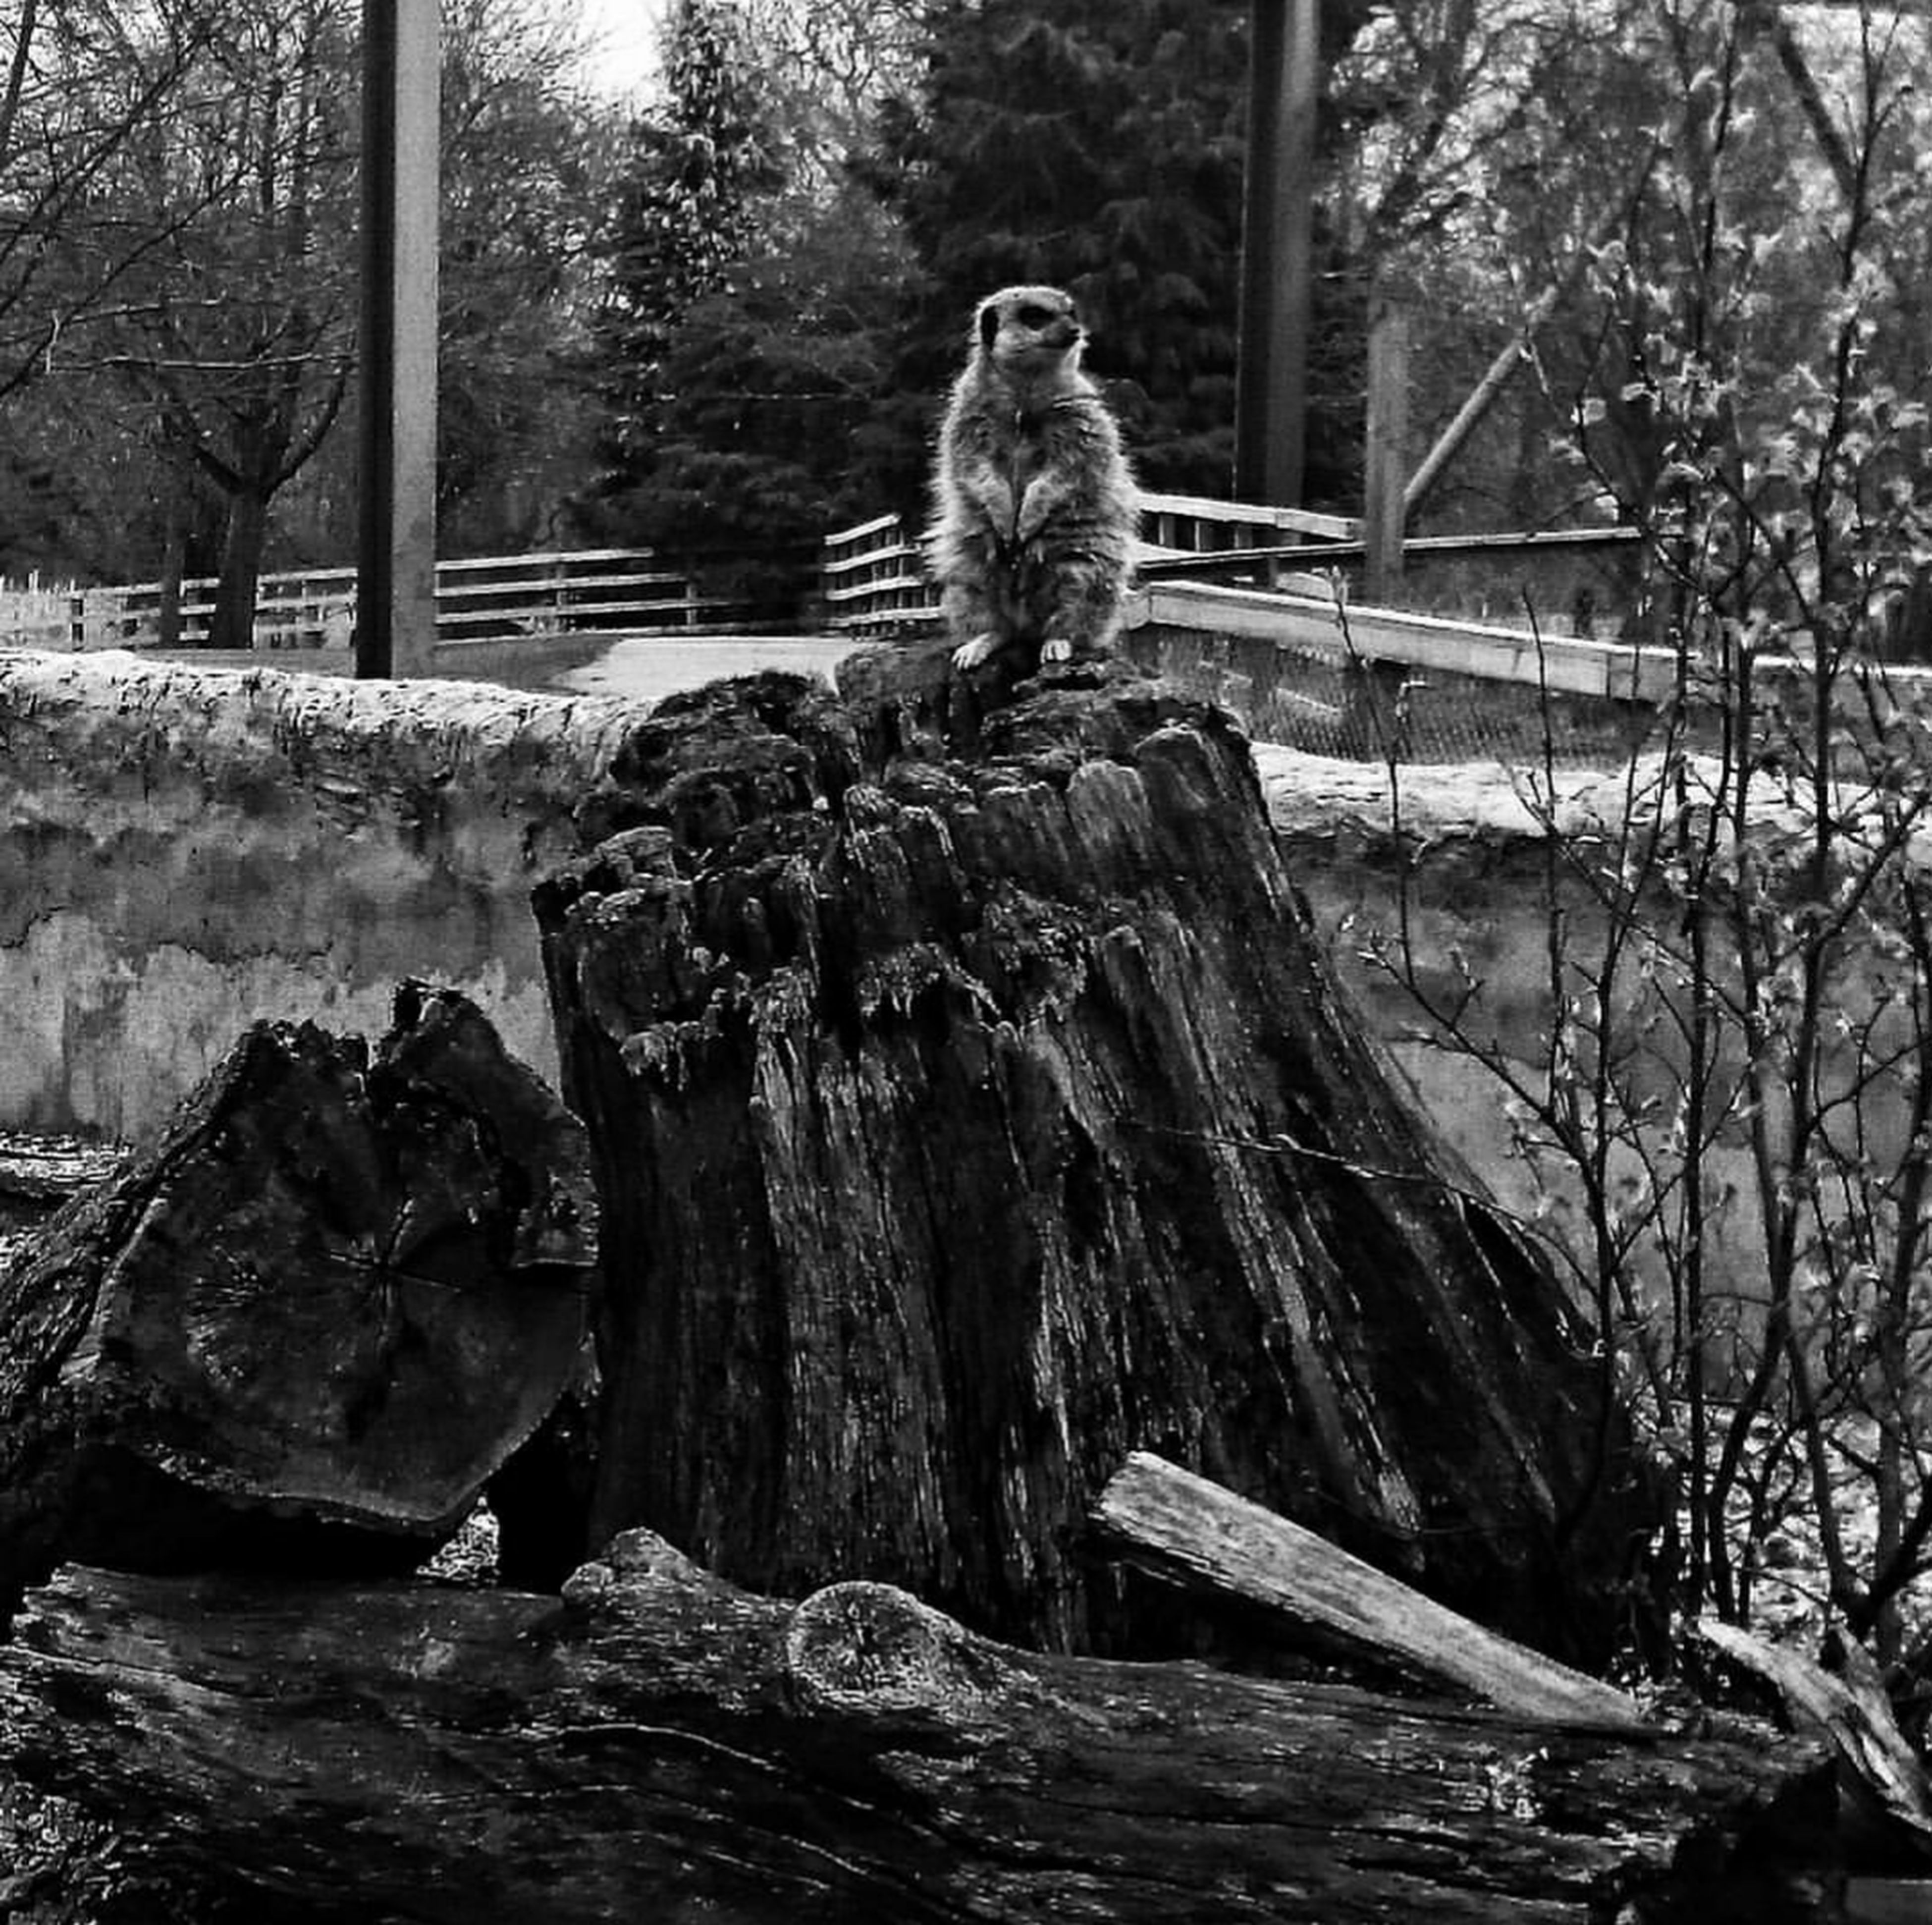 Tree No People Animals In The Wild Outdoors Snapshots_daily Mobilephotography Meerkats Standing Meerkat Animal Likes4likes Meerkats On Guard Meerkats Compare The Meerkat Comparethemeekat PhonePhotography Photooftheday Snapshots_daily Photography Likesphotogram Zoo Photography  Zoophotography ZOO-PHOTO Meerkat Photography Meerkat, Cute Animals, Furry, Animal Close Up, Yellow, Zoo, Zoo Pics, Meerkat Pics Animal Themes Like4likes